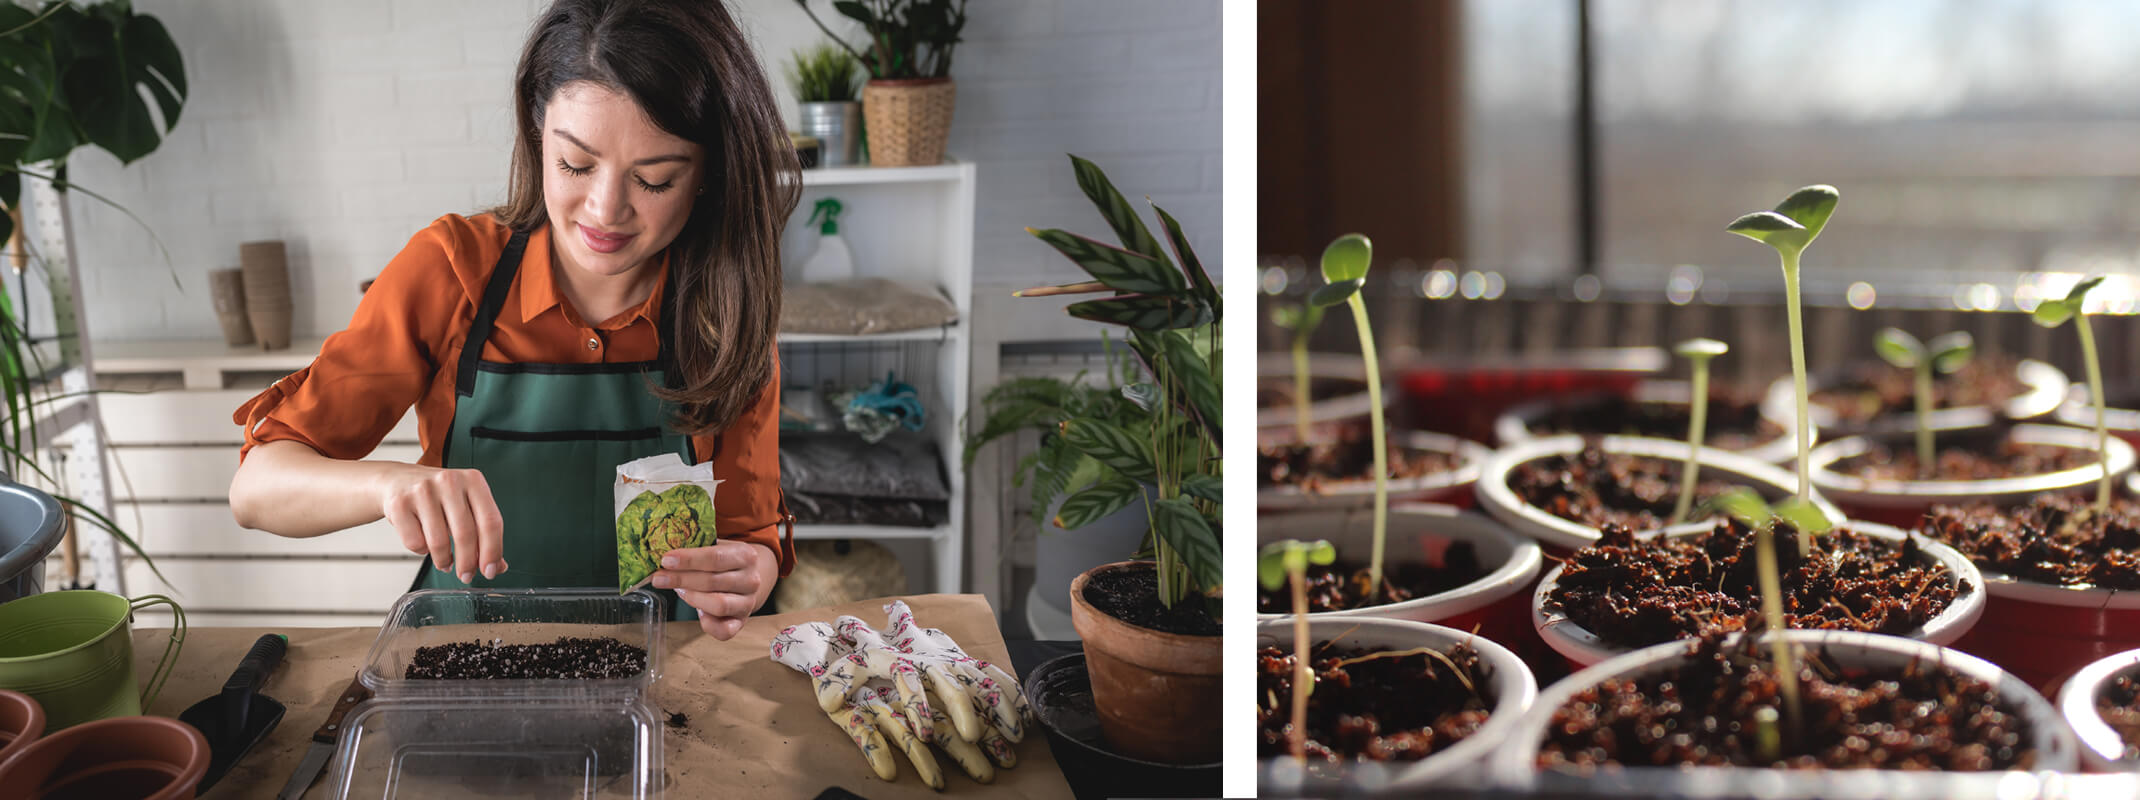 Woman planting seeds indoors from seed packet and second image of seedlings coming up from cups of dirt inside